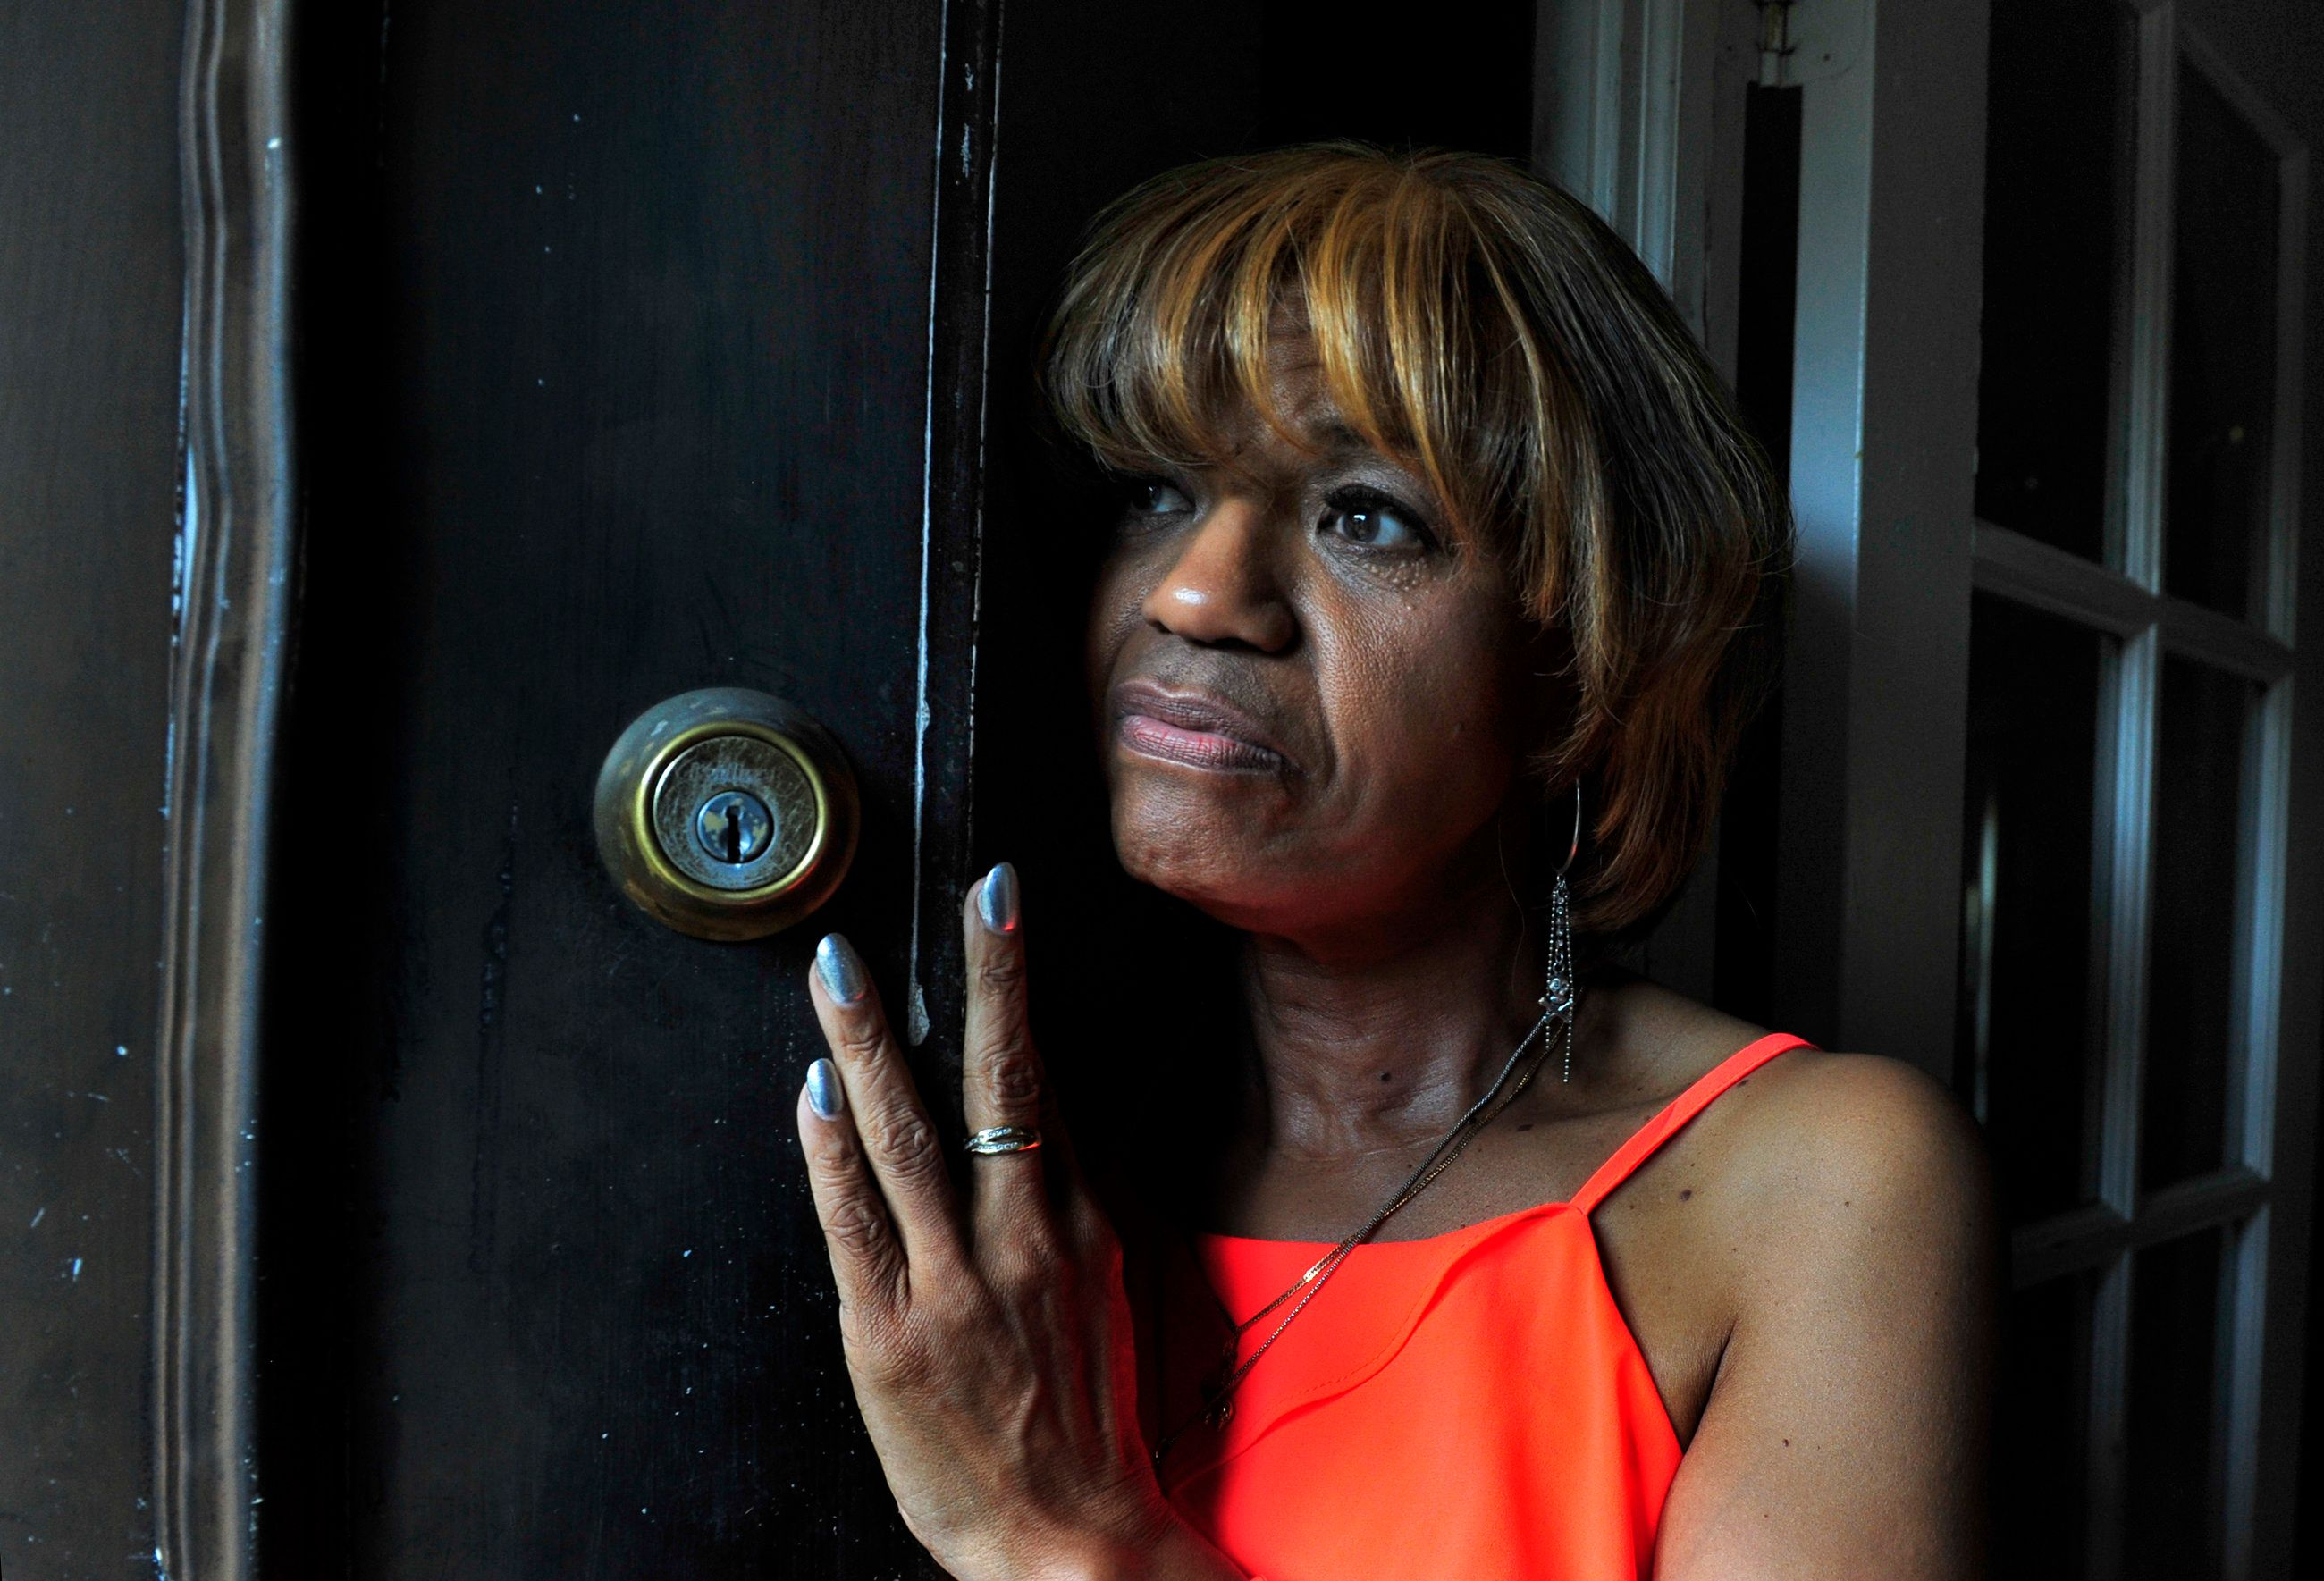 Lola Holten has lived in Detroit for 40 years. Her neighborhood has many abandoned, boarded-up homes and her own home is